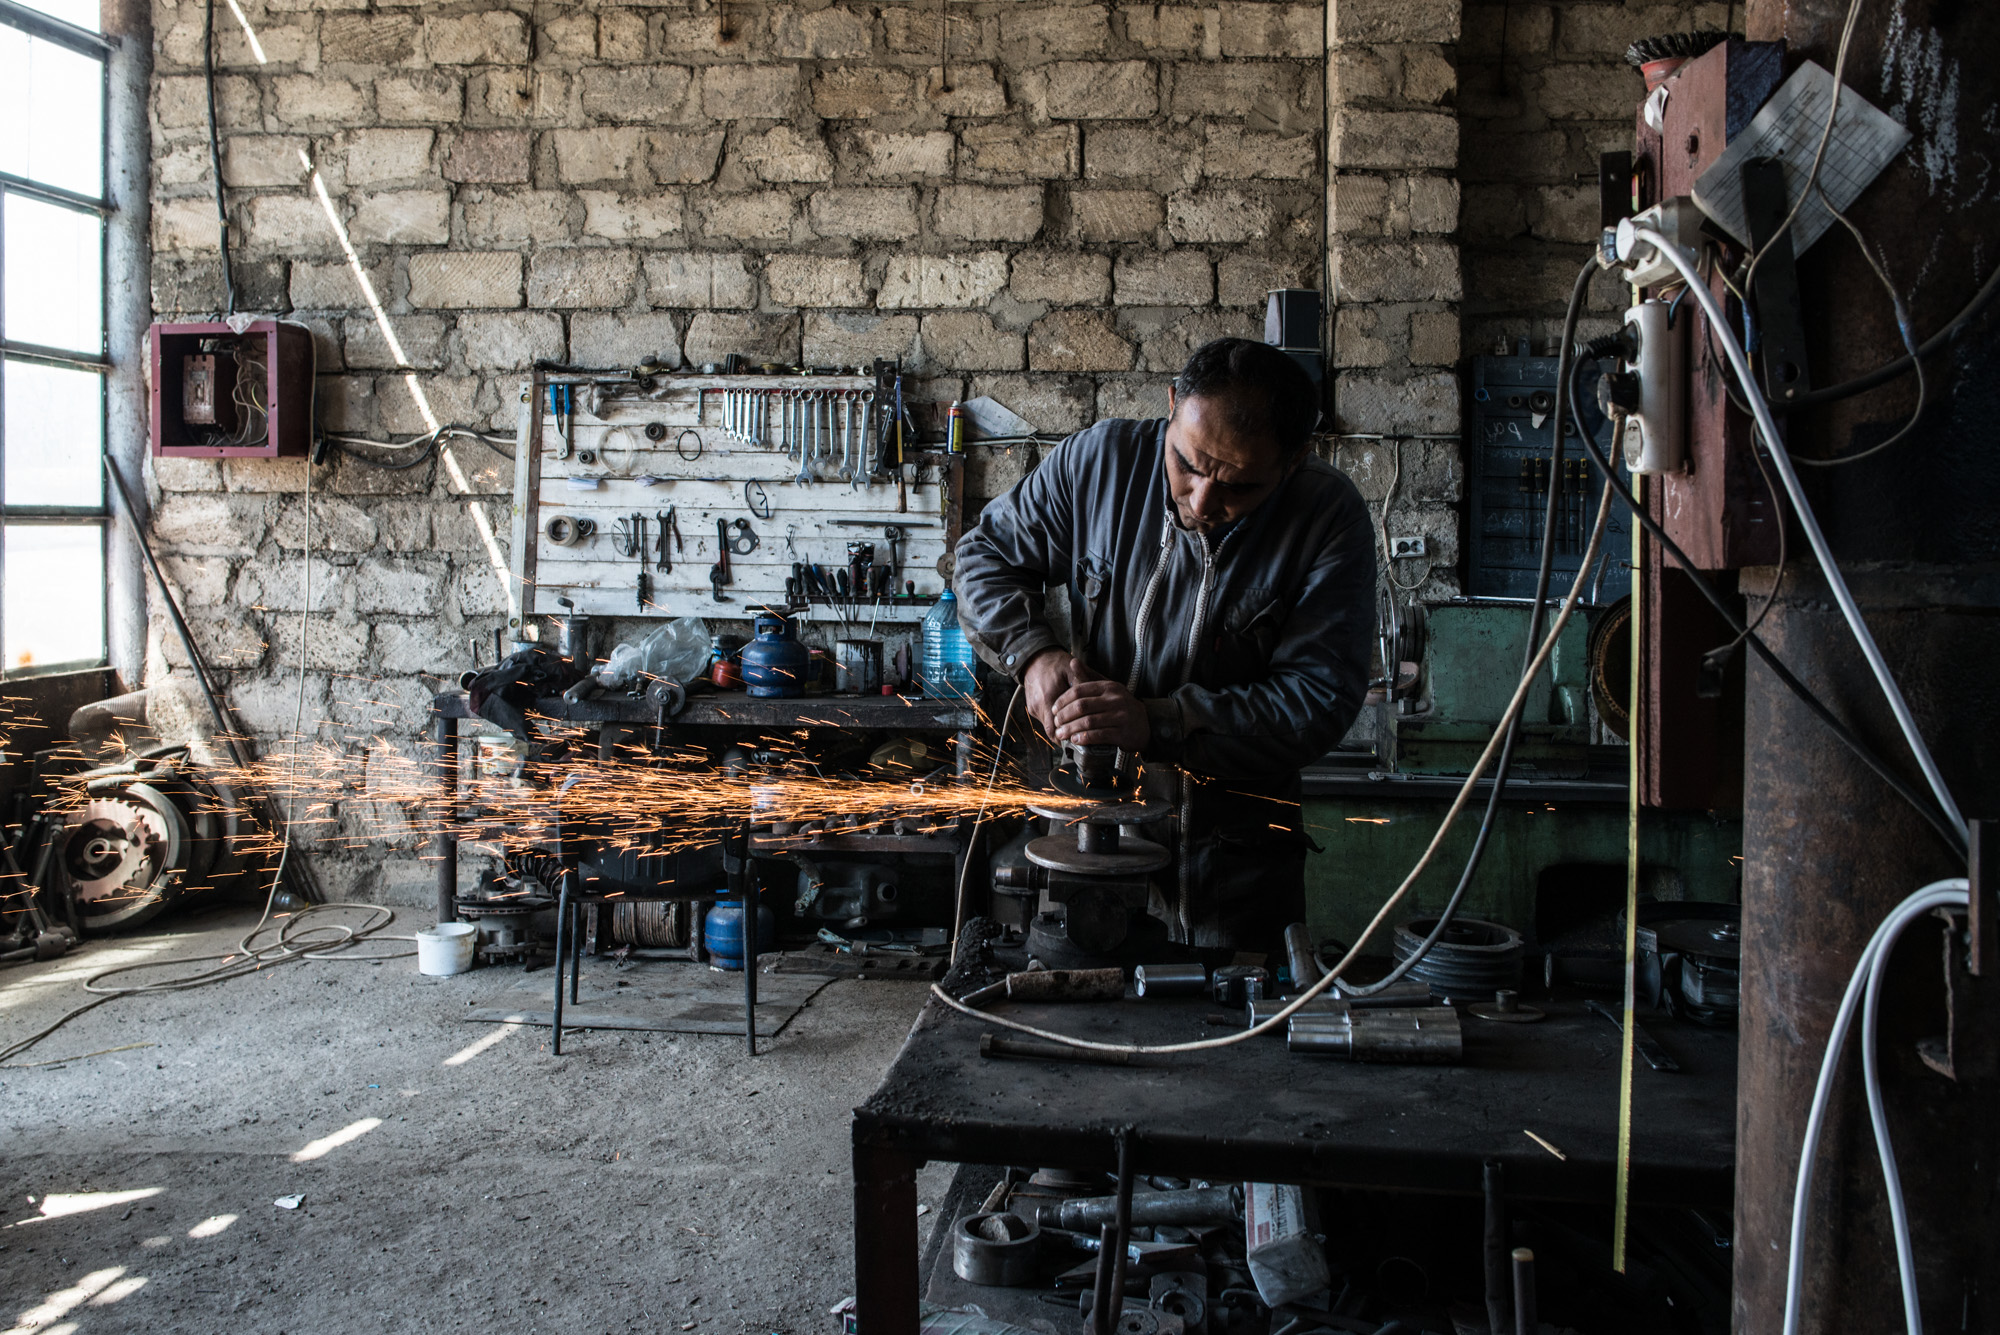 Nikol arrived from Syria in 2011. He is married to a local Armenian woman and runs a metal turning workshop in Zangilan.